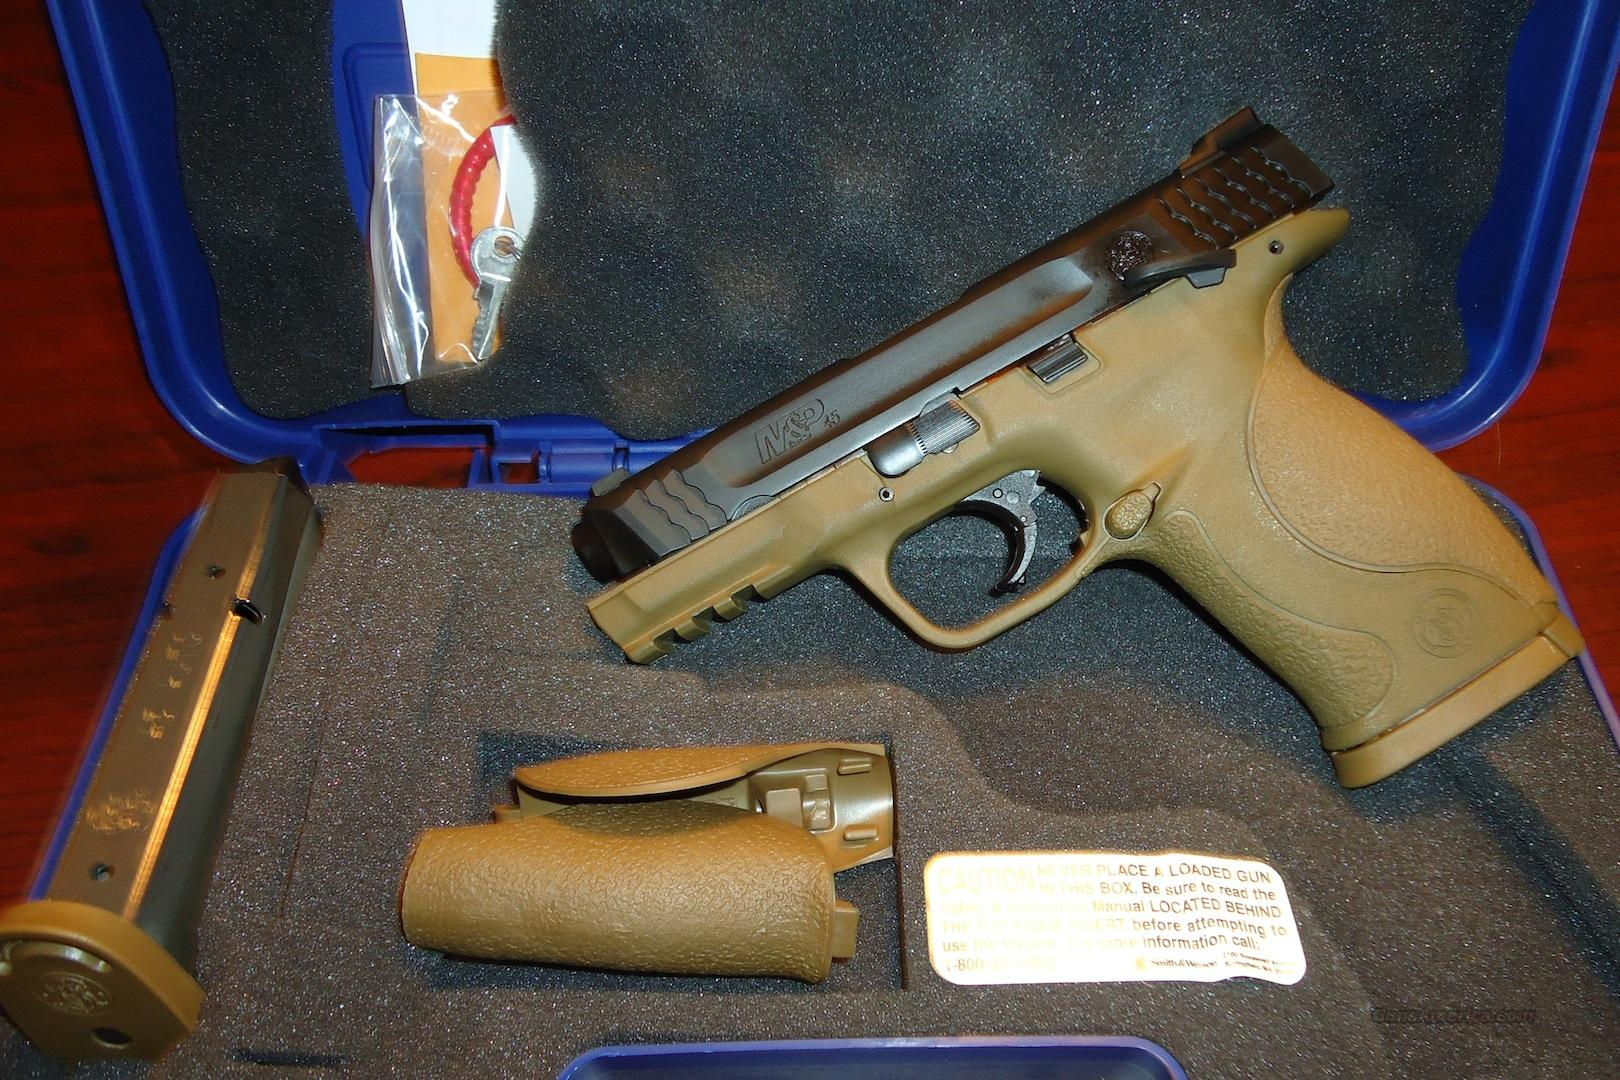 BNIB Smith & Wesson M&P 45ACP in FDE !!!! RARE!!!   Guns > Pistols > Smith & Wesson Pistols - Autos > Polymer Frame